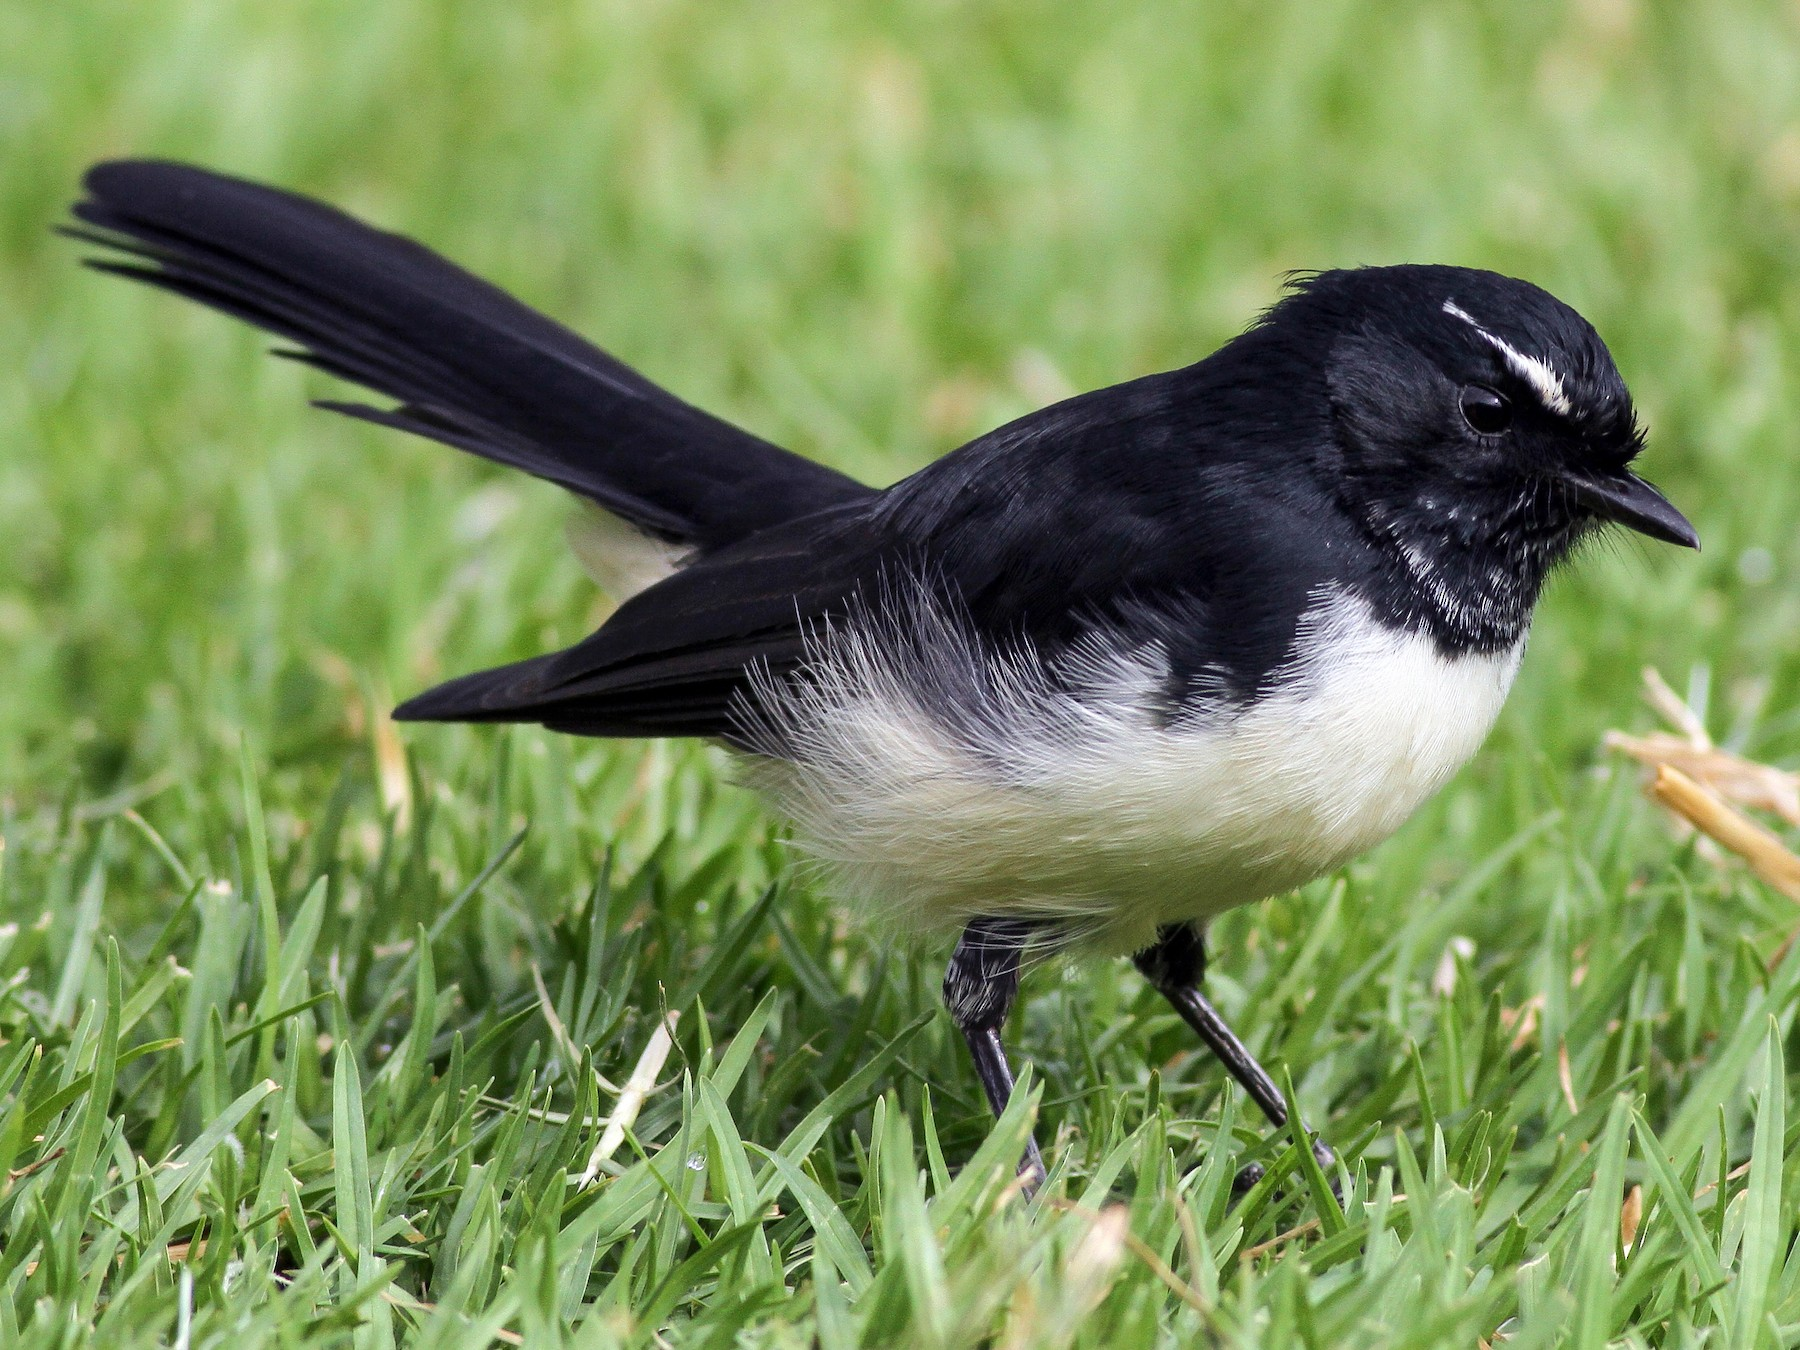 Willie-wagtail - Evan Lipton